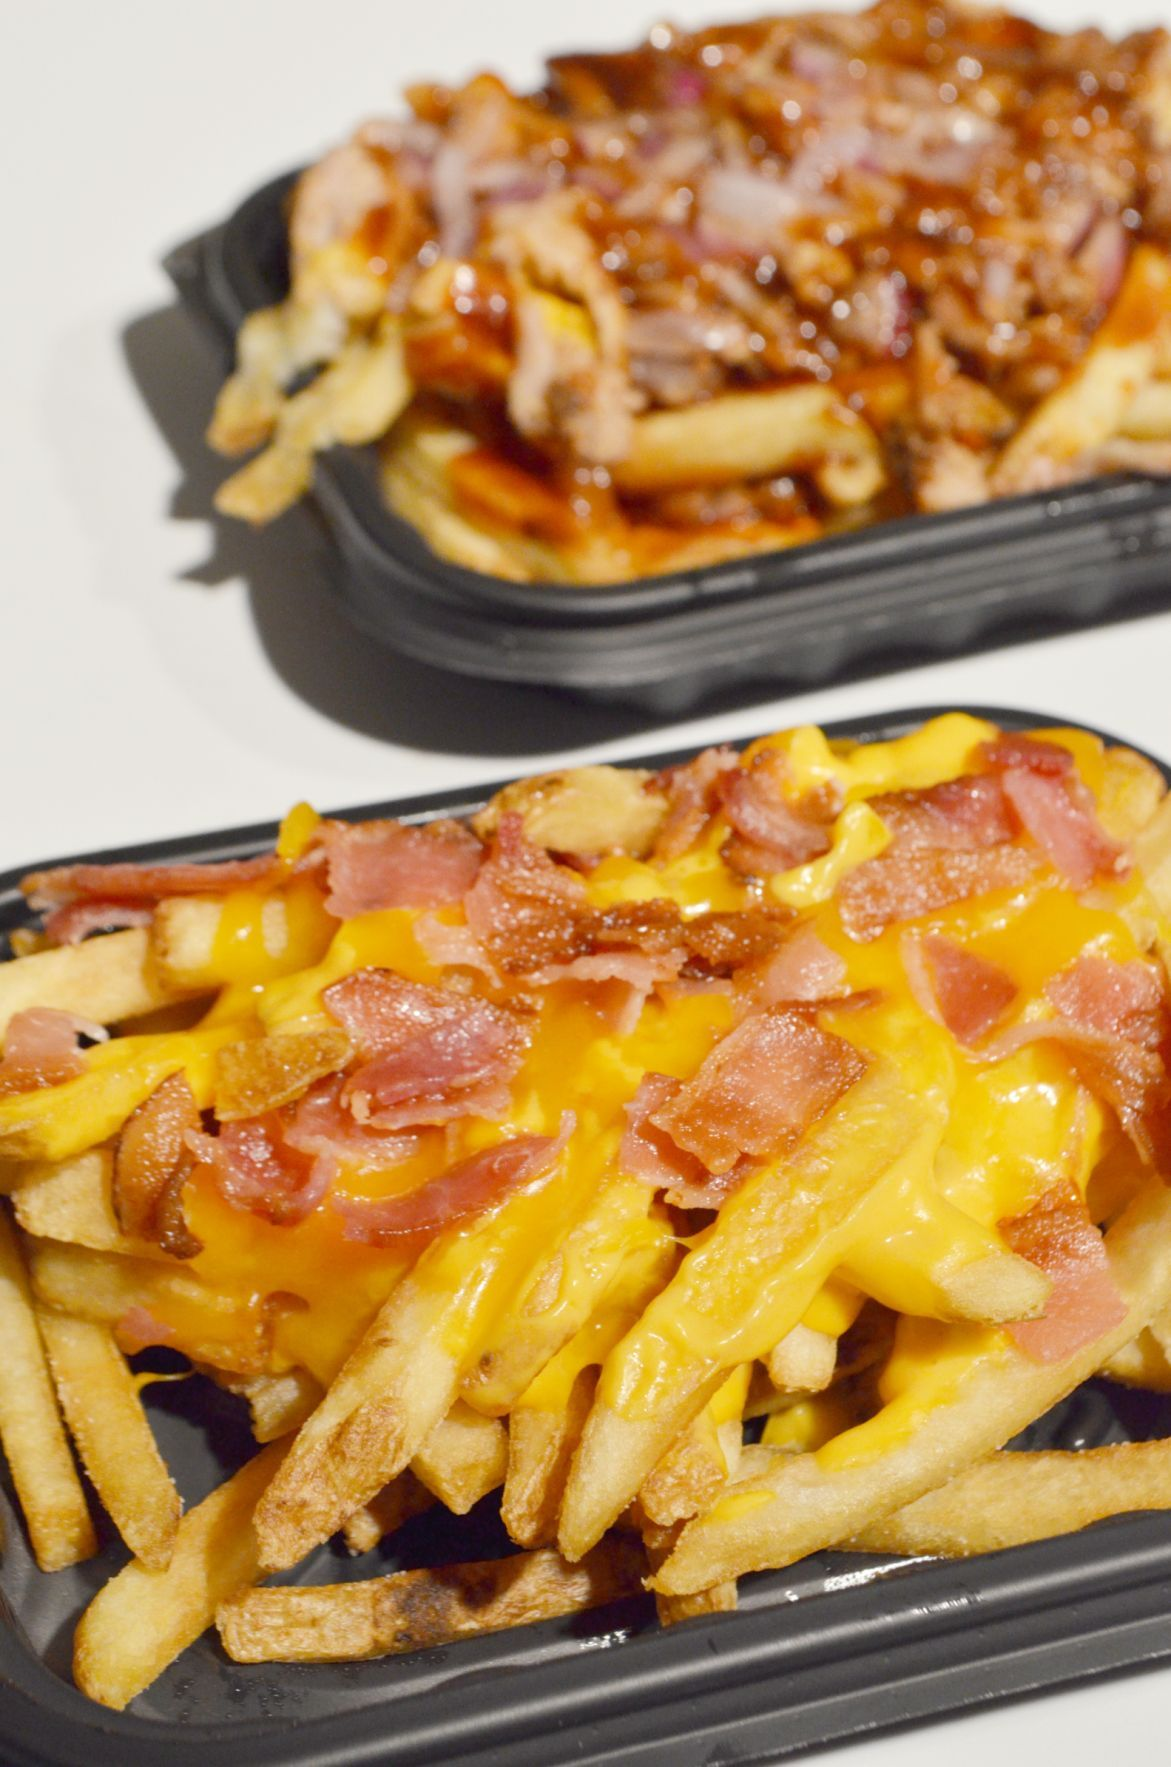 This Spuds For You Wendys New Cheesy Fries Raise The Ooze Factor